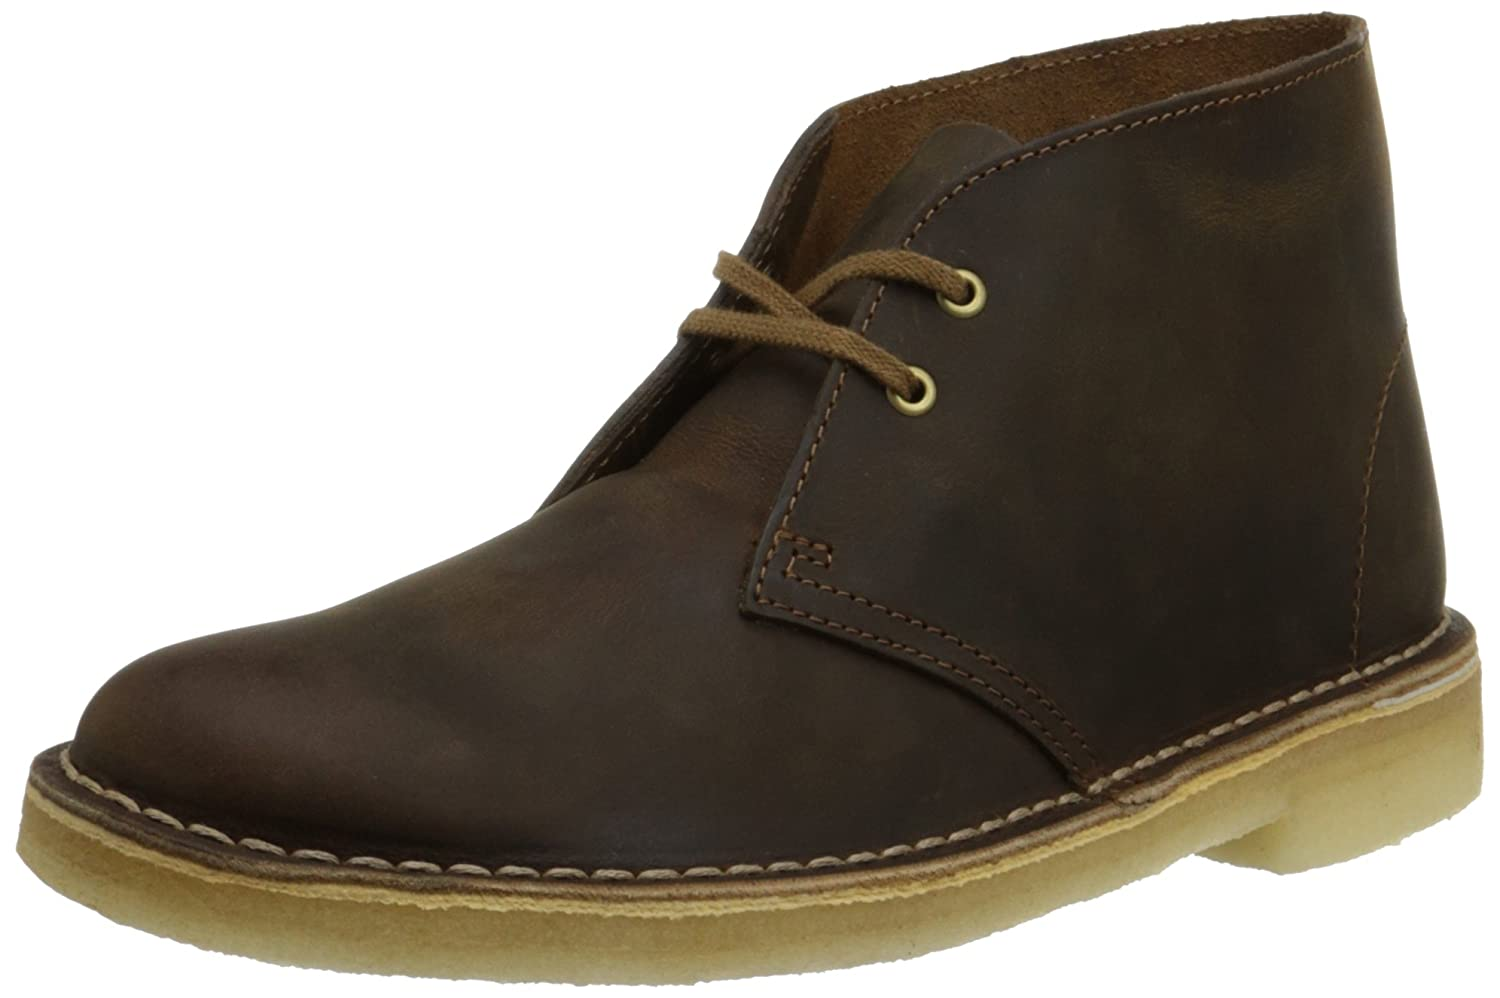 CLARKS Women's Desert Boot Ankle Bootie B00UCVQ3TE 7.5 B(M) US|Beeswax Leather